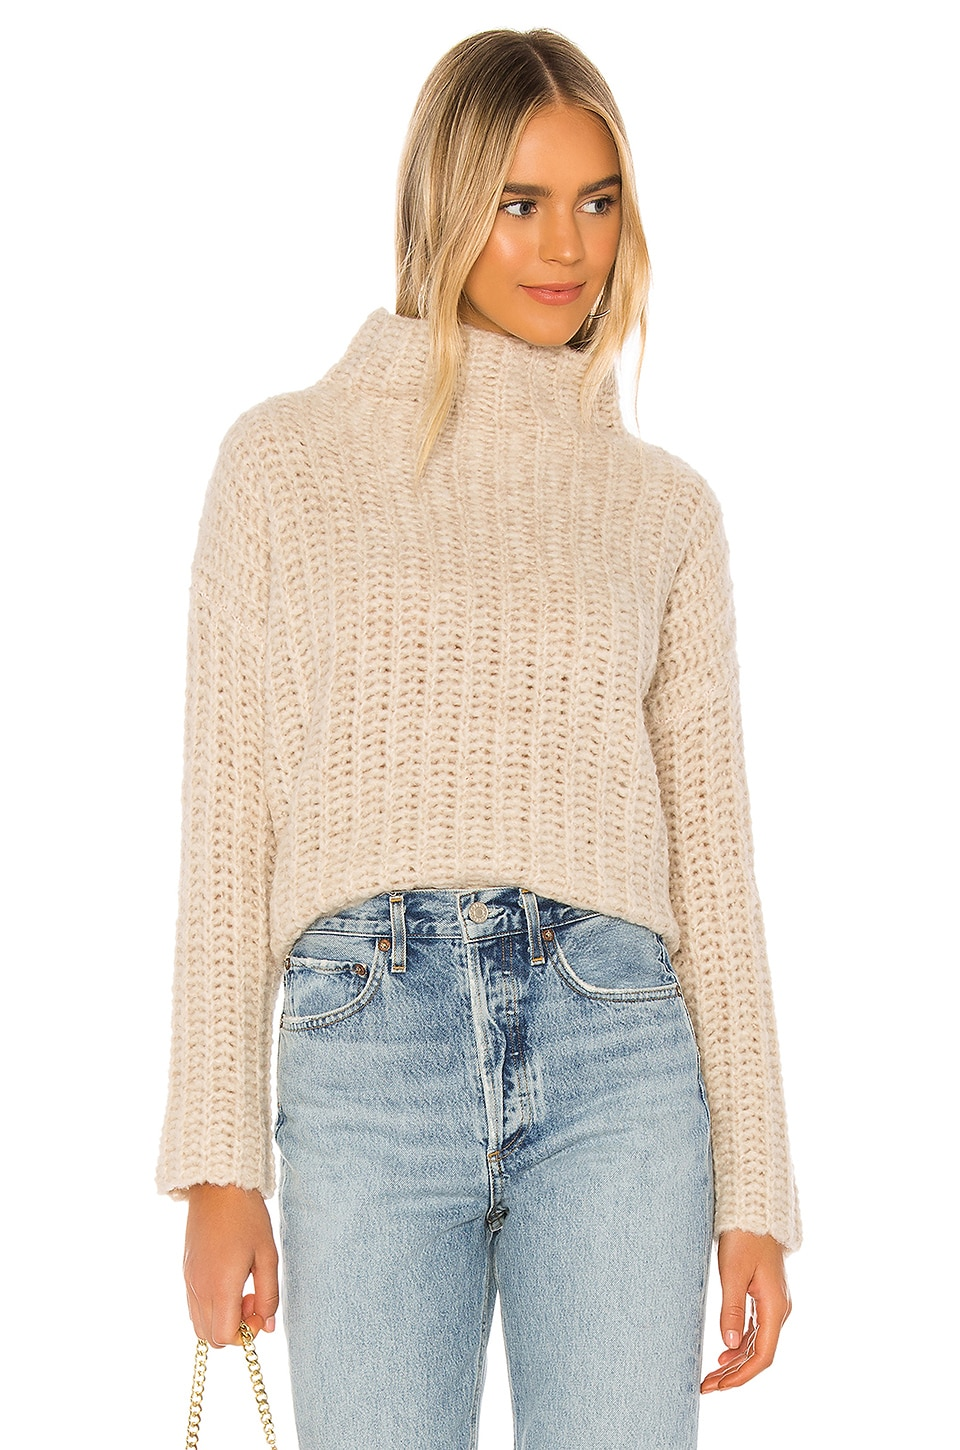 Tularosa Canteen Sweater in Neutral